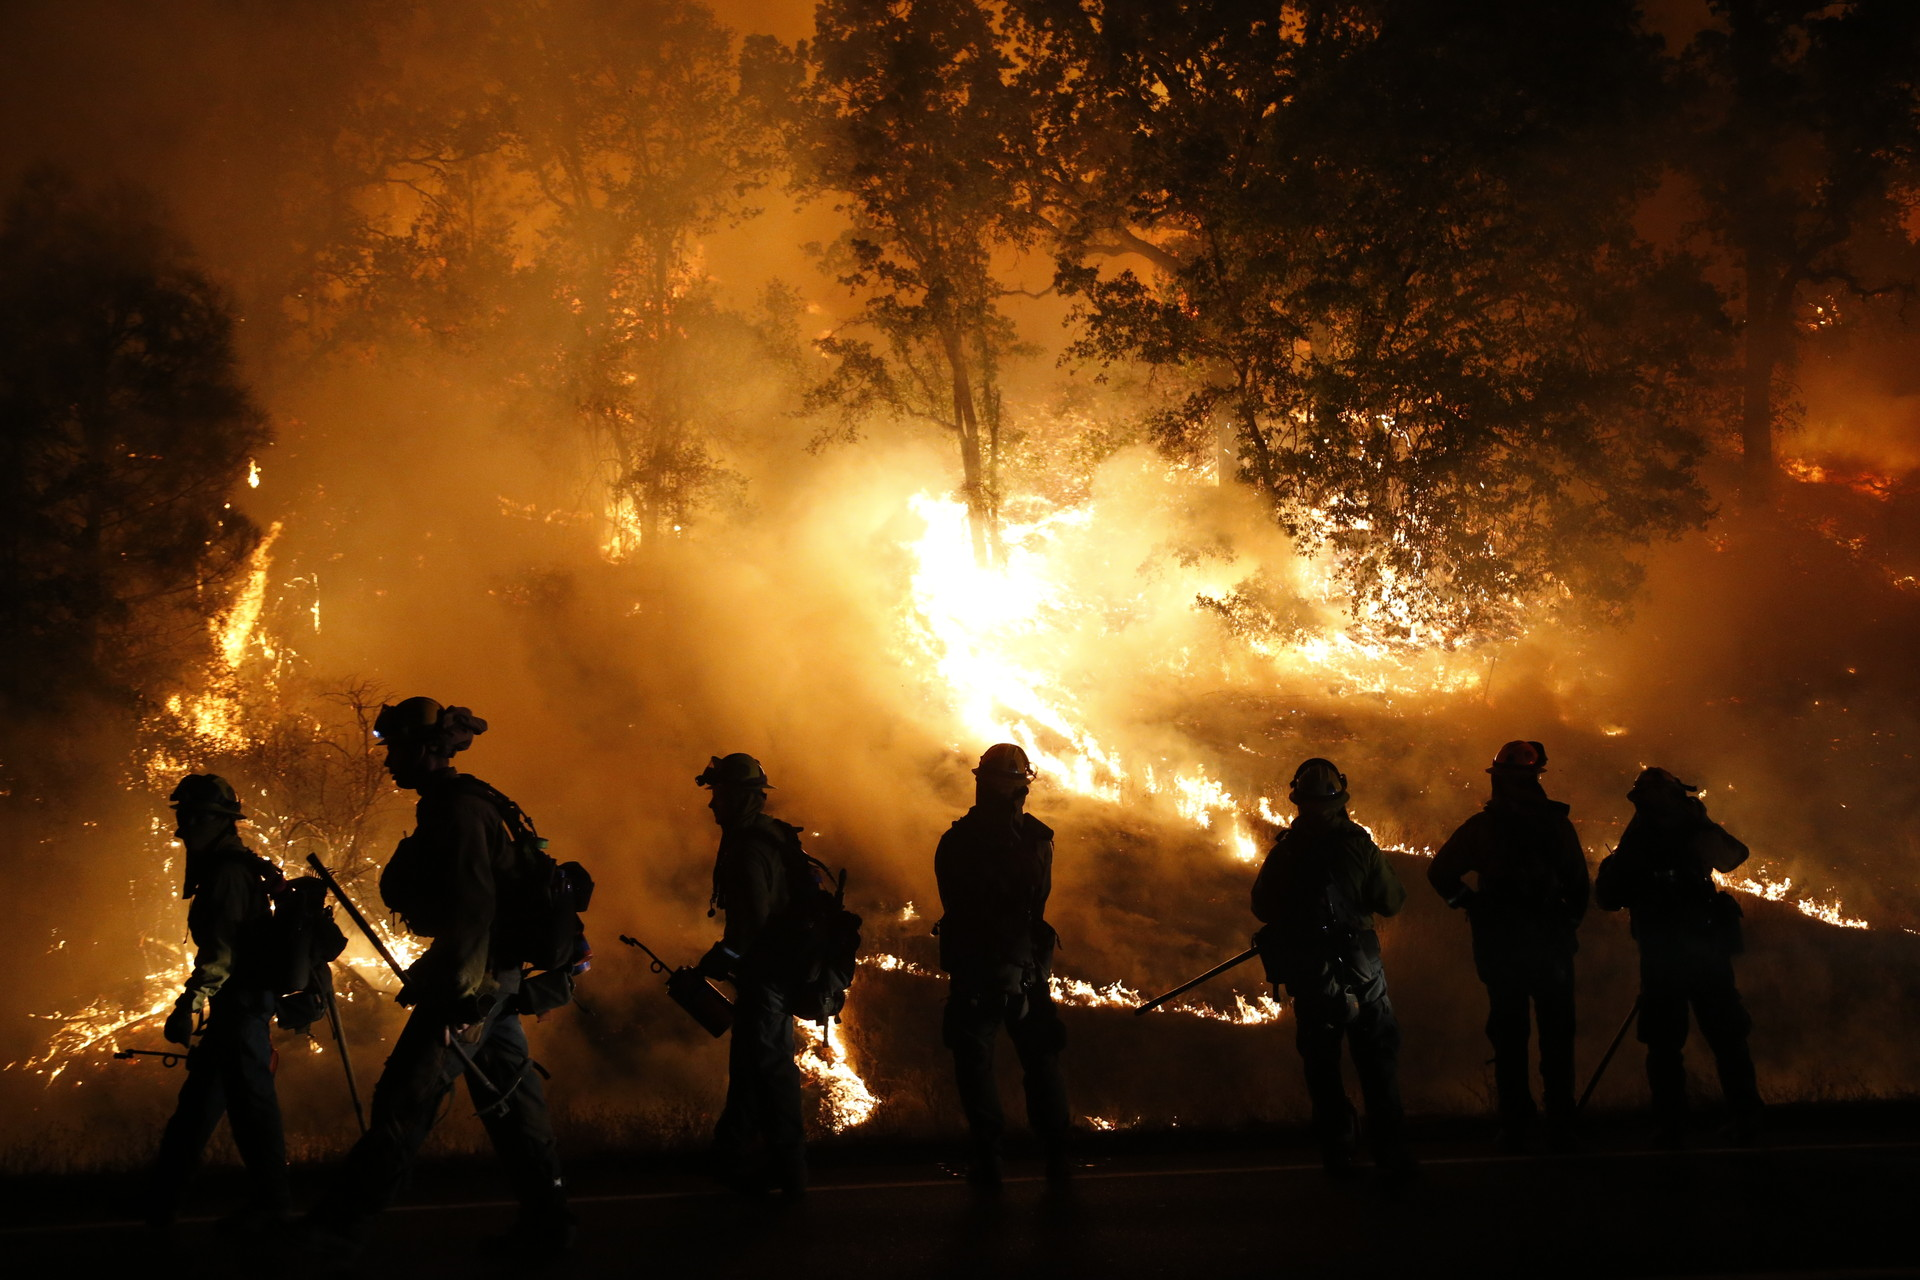 Firefighters with the Marin County Fire Department's Tamalpais Fire Crew monitor a backfire as they battle the Valley Fire on September 13, near Middletown. (Stephen Lam/Getty Images)